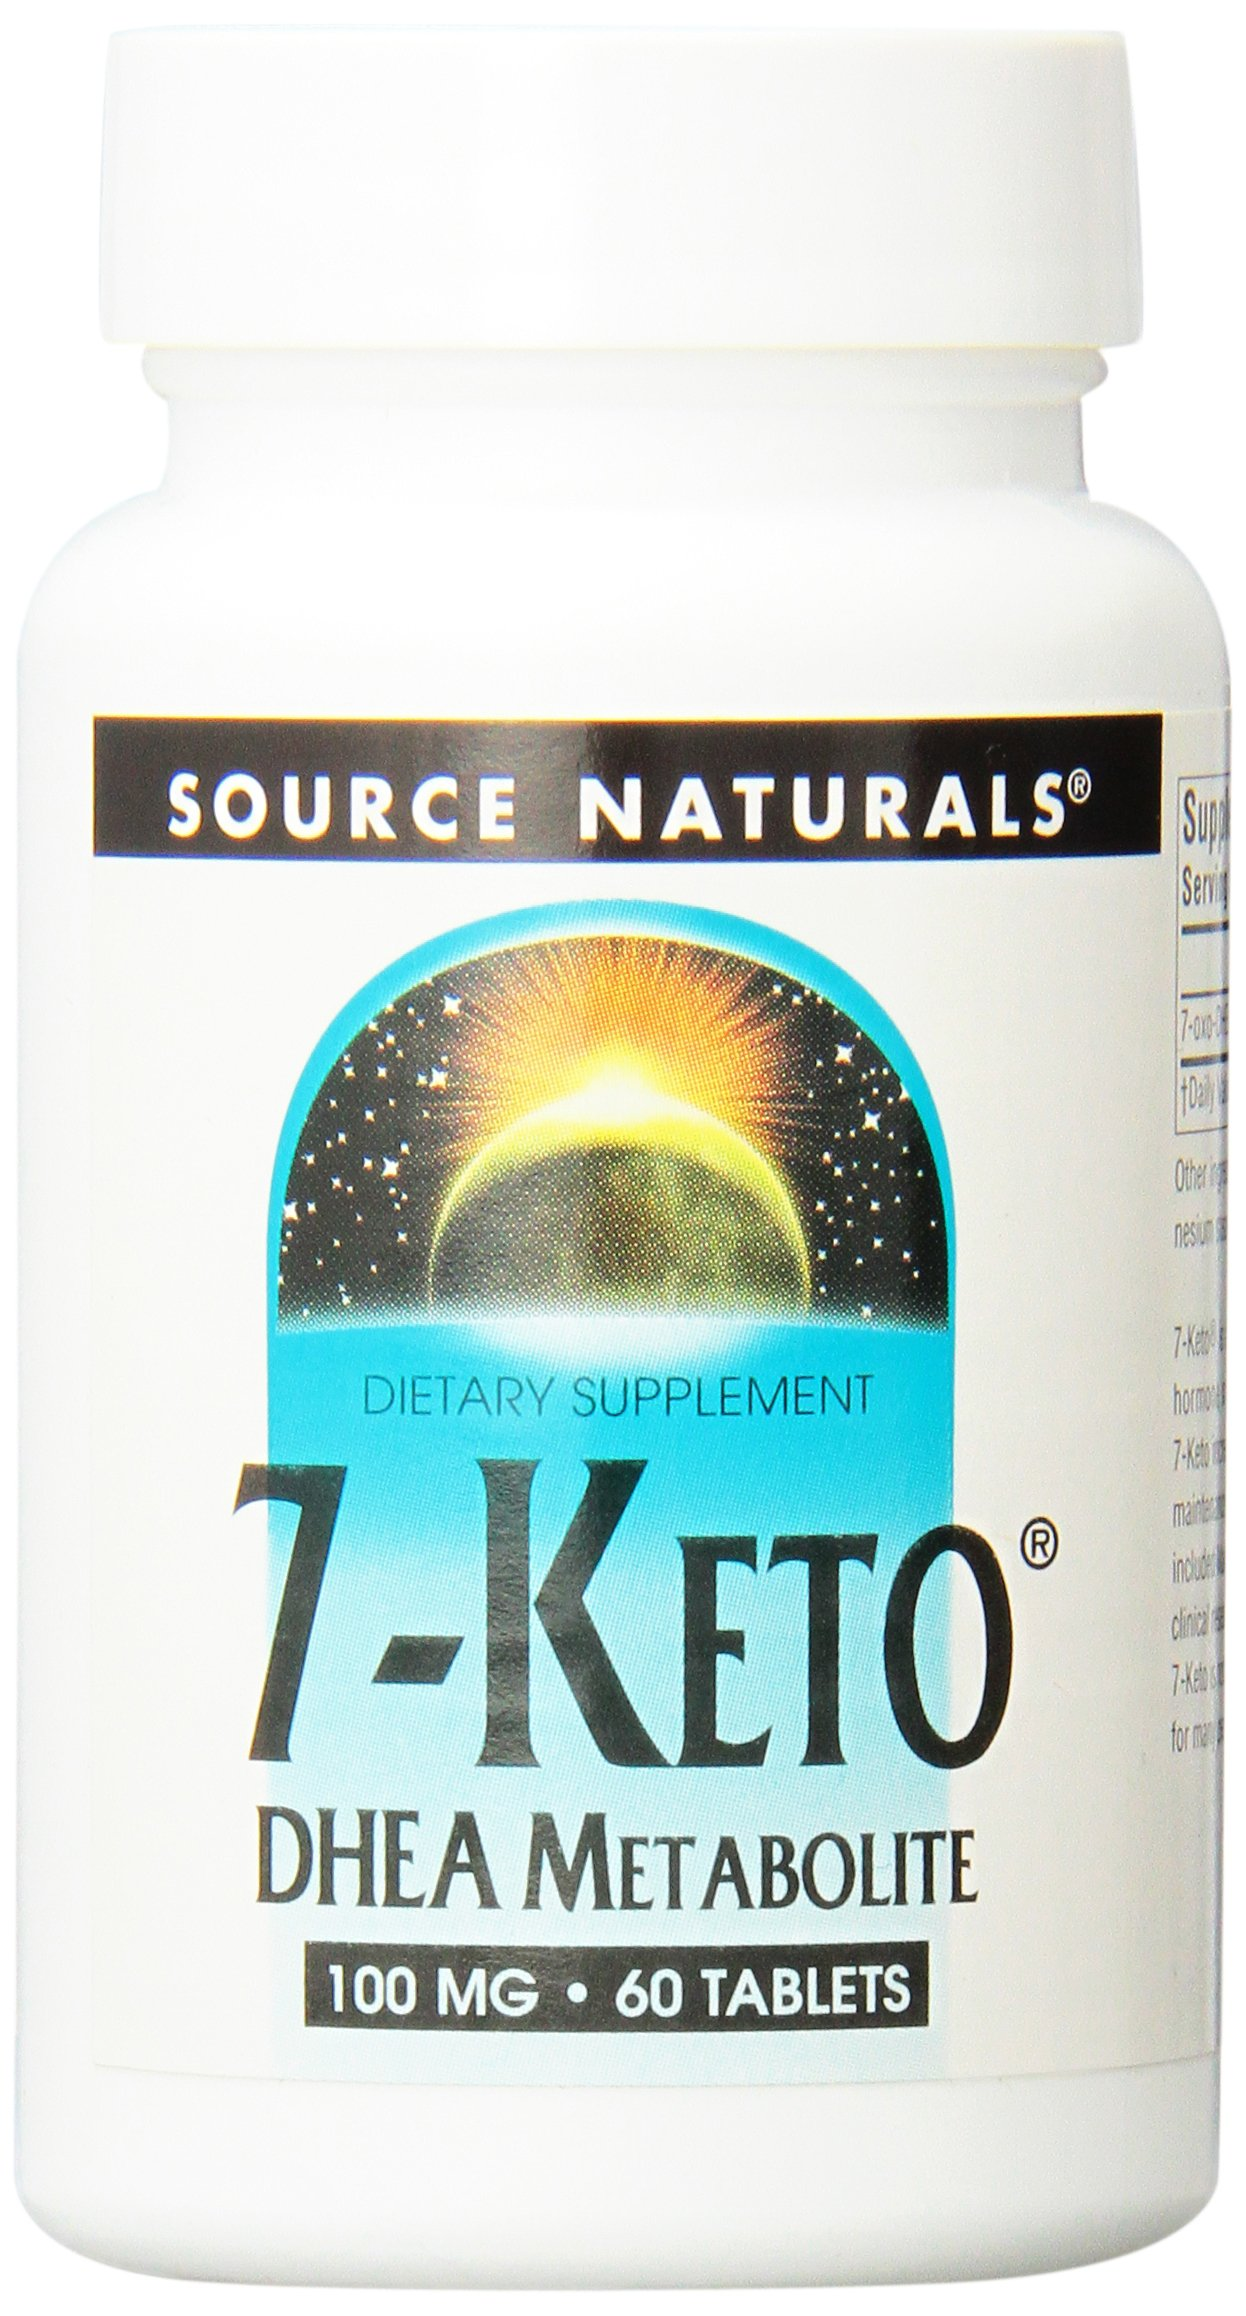 Source Naturals 7-Keto DHEA Metabolite 100mg, Effective Anti-Aging Compound, 60 Tablets